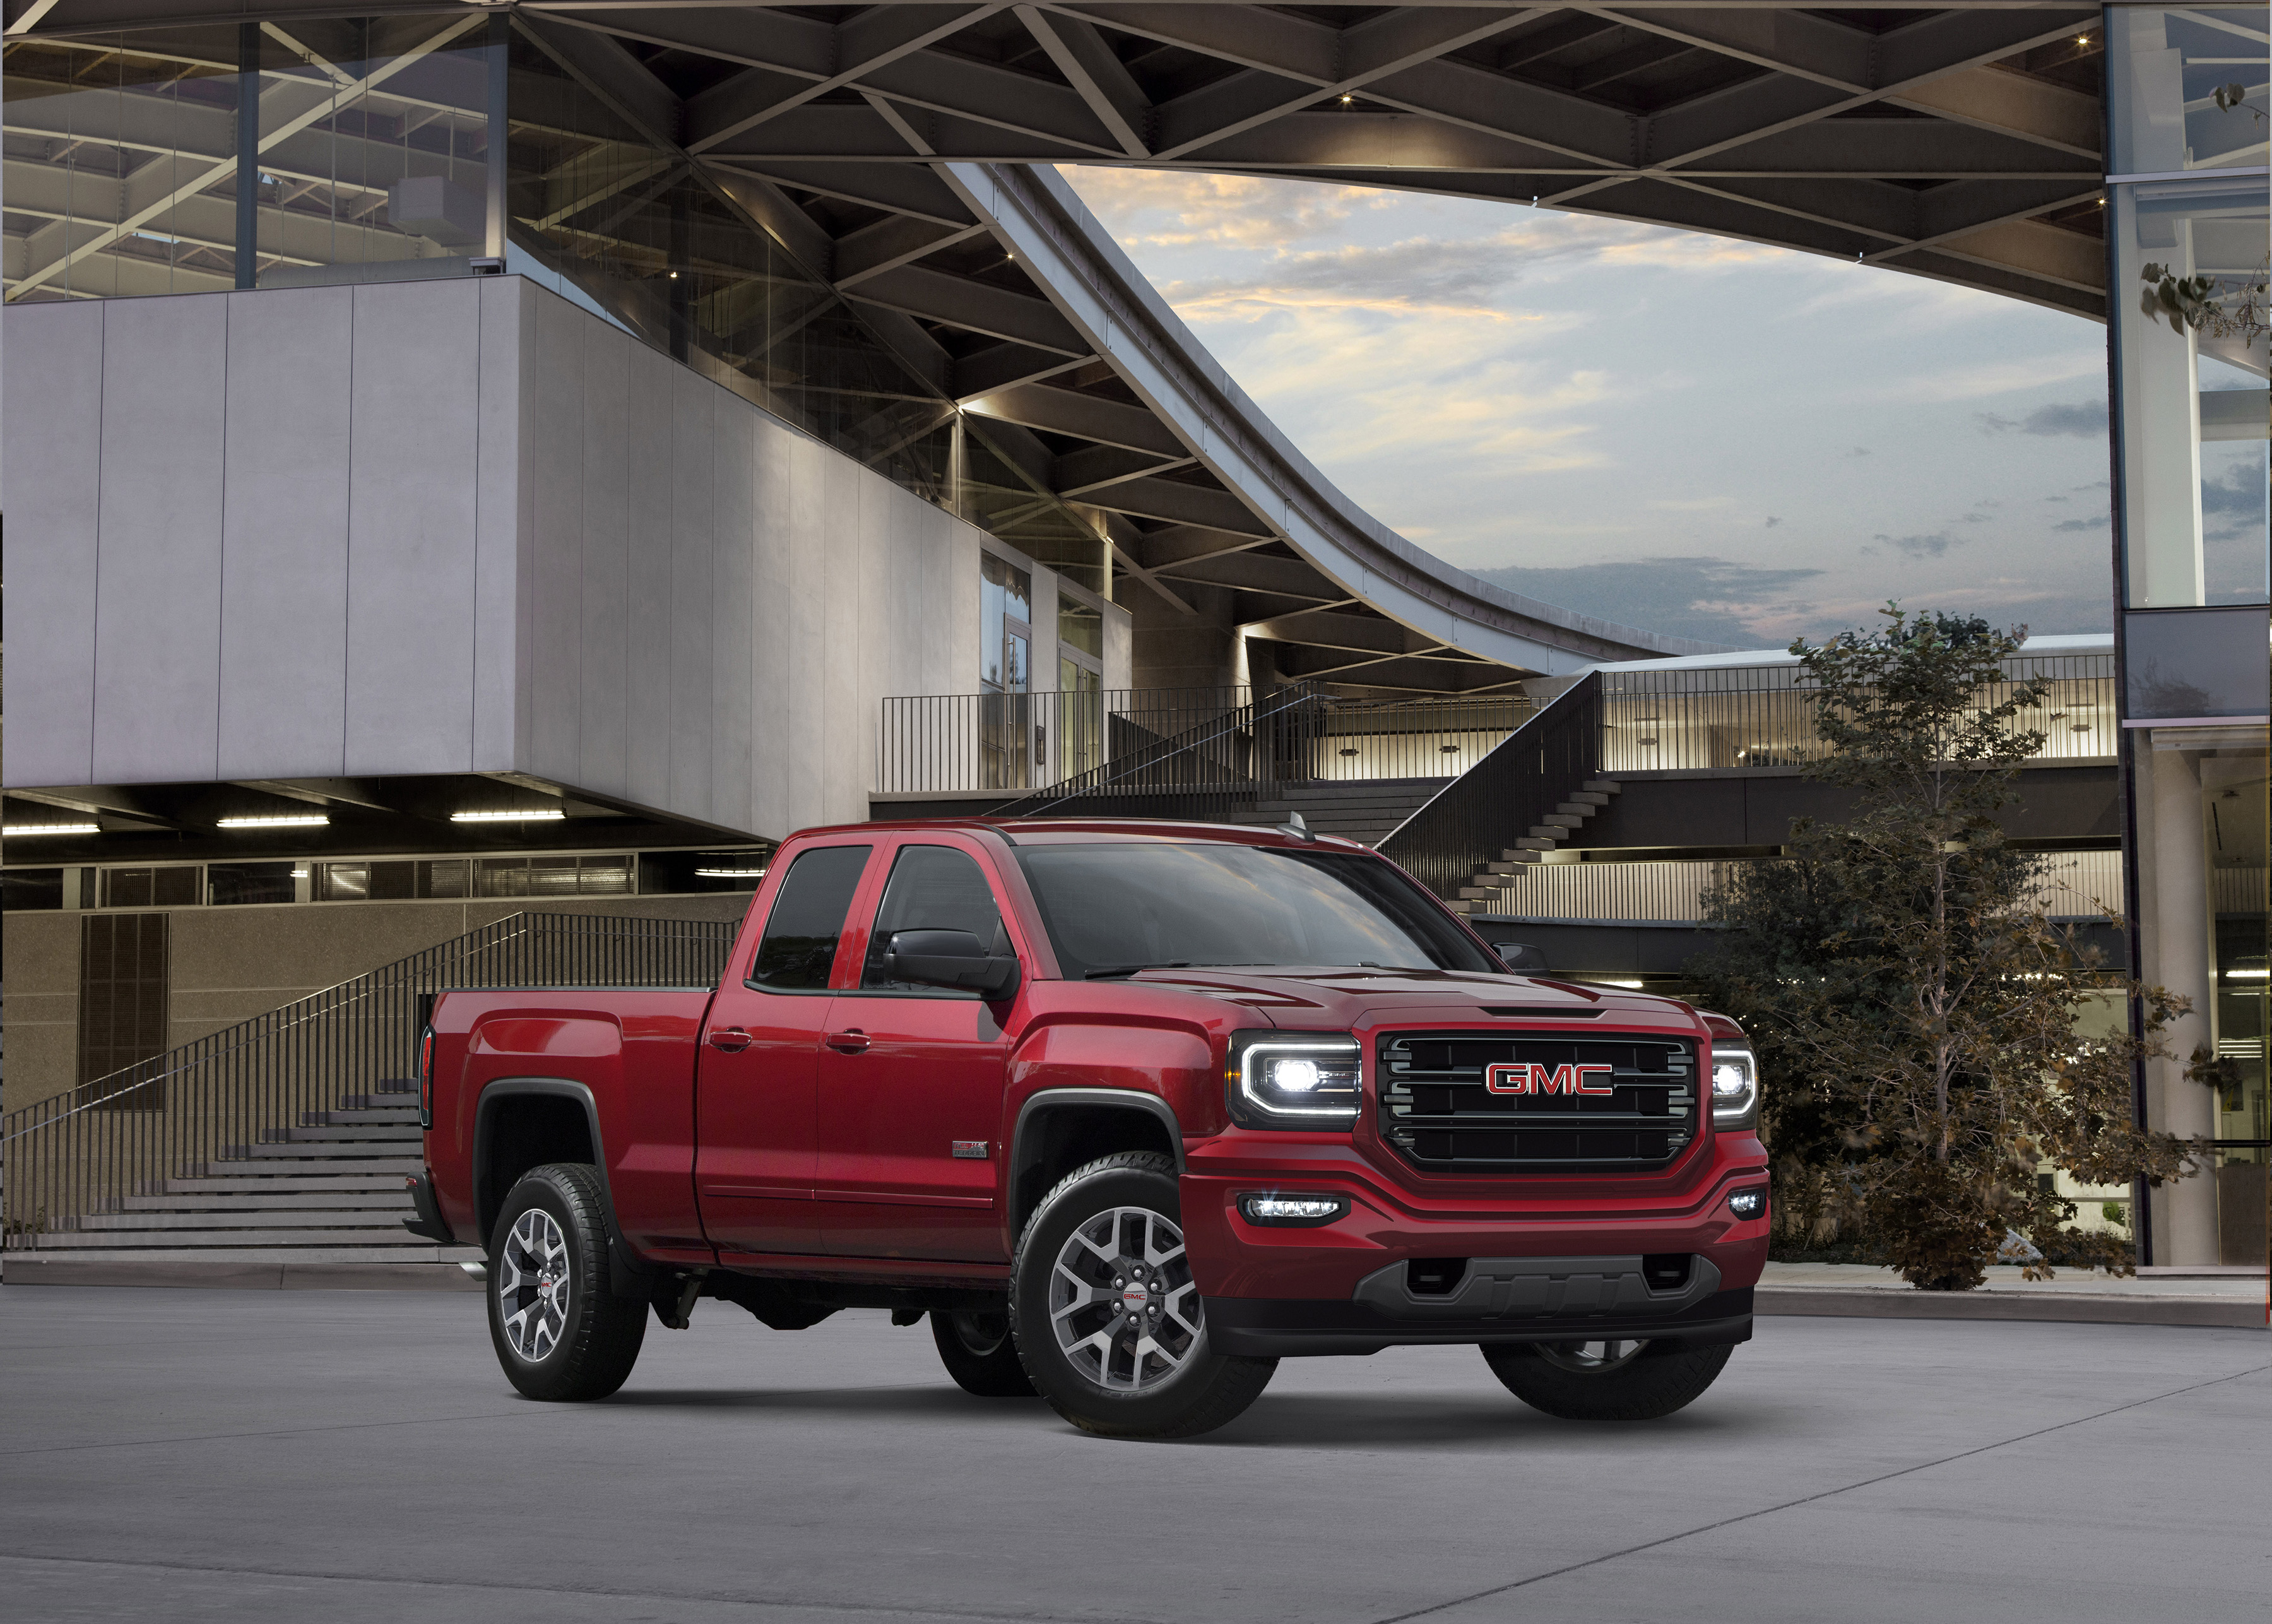 slt content new engineering vehicles look aug news pickup offers detail pages media en advanced sierra gmc truck us